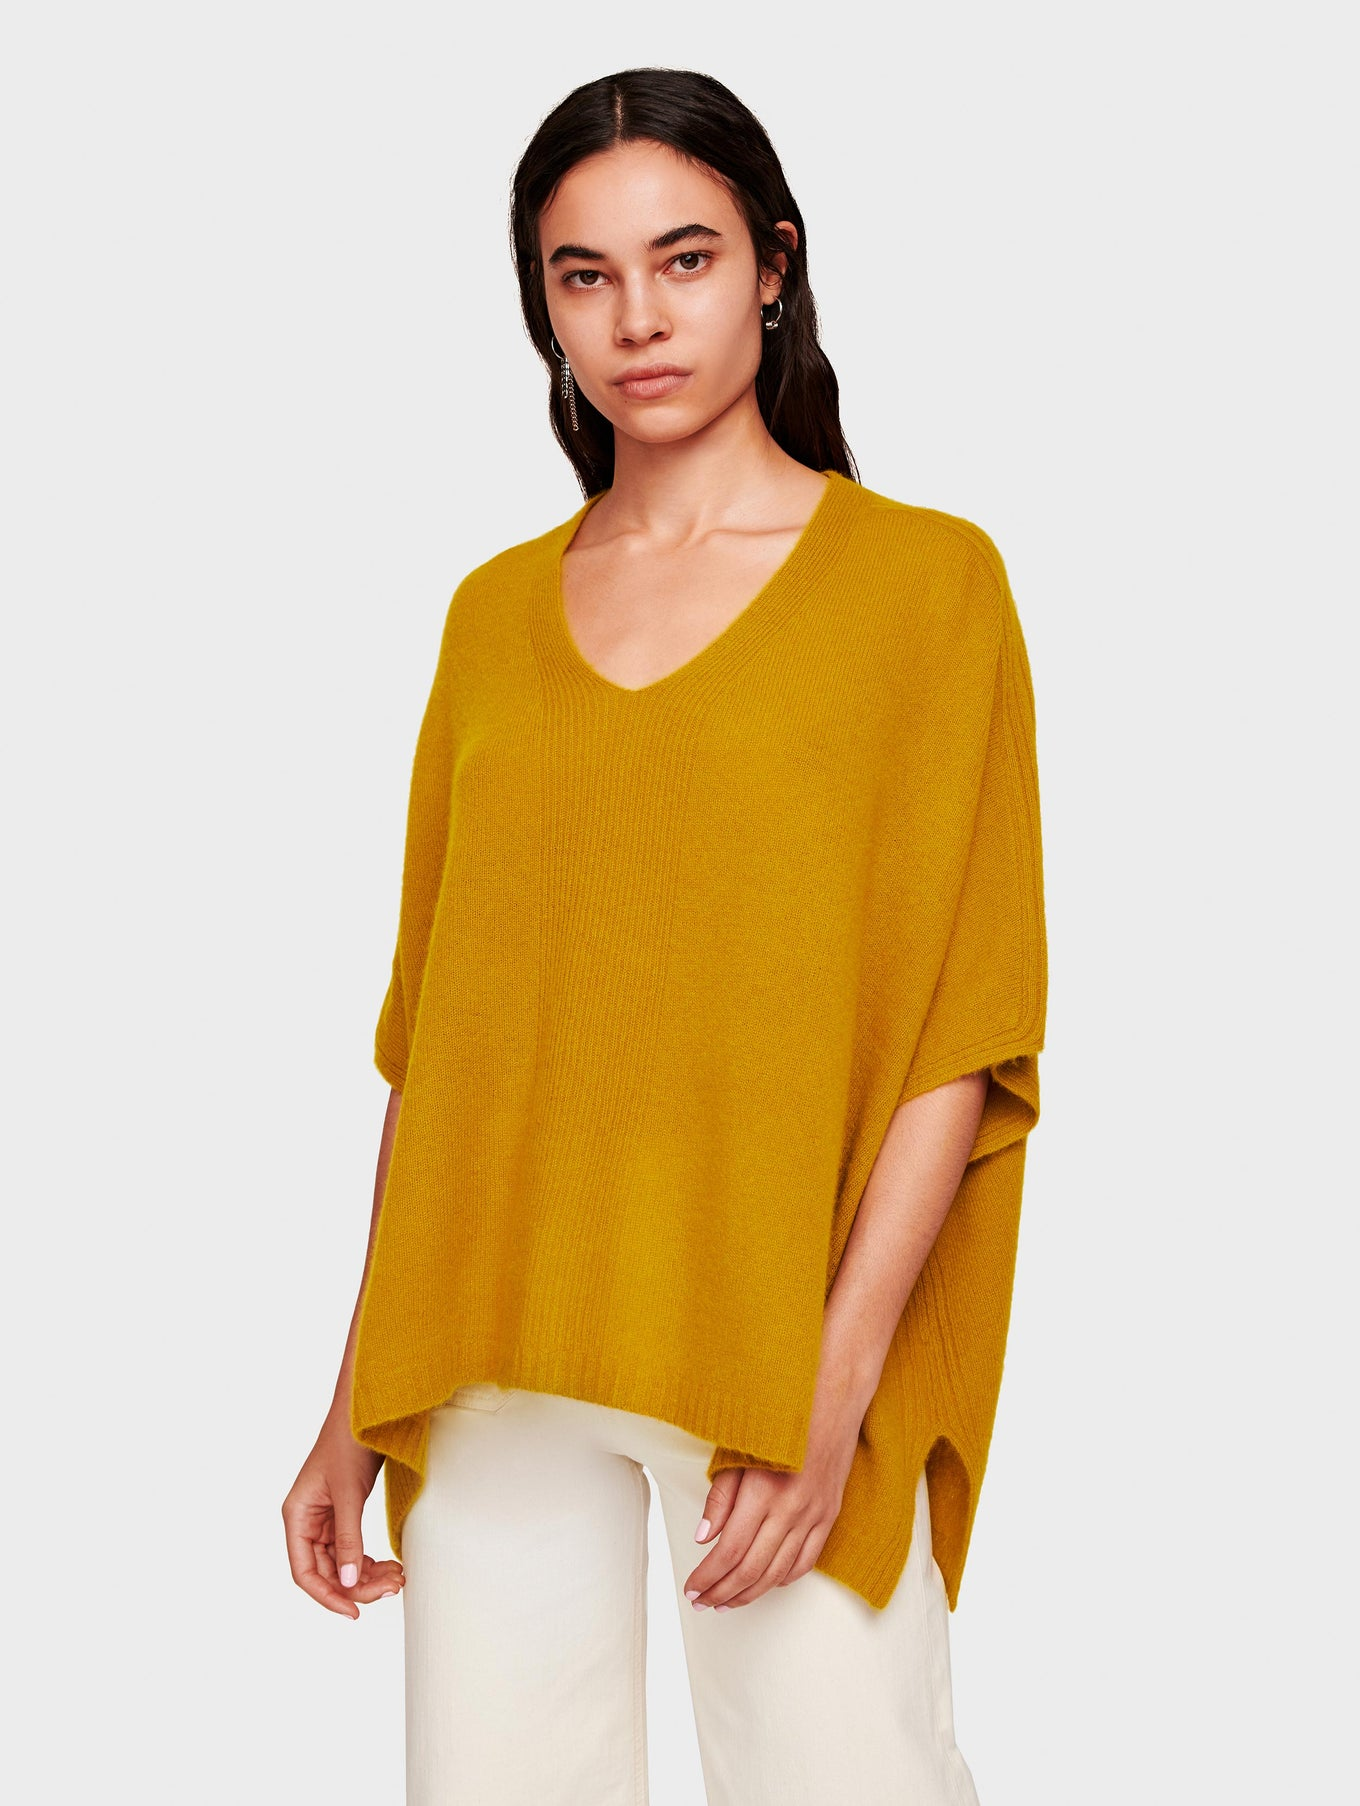 Cashmere V Neck Poncho - Antique Gold - Image 1